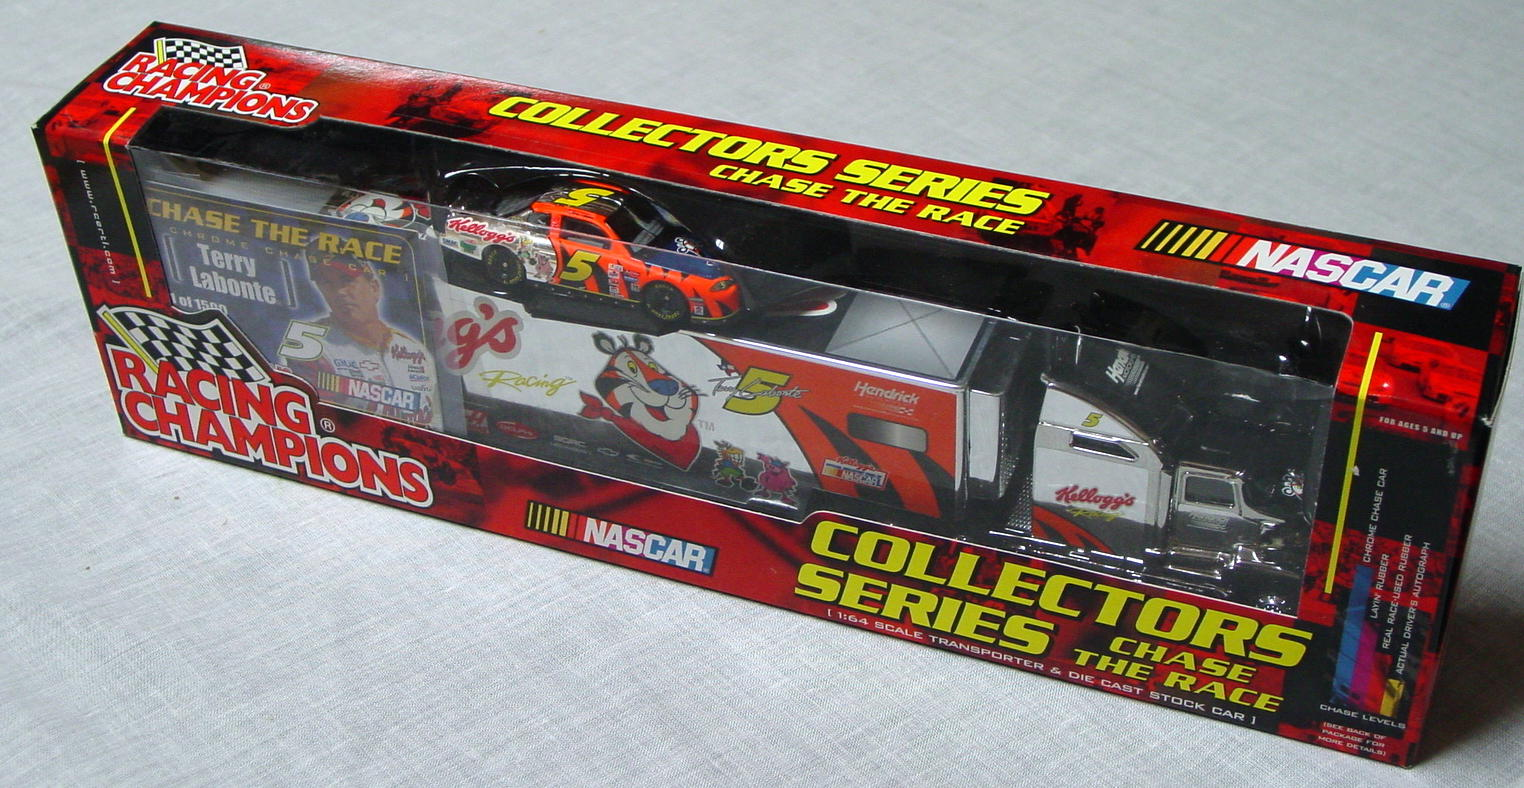 NASCAR 64 - RC Transporter Chase Car Terry Labonte 5 with car